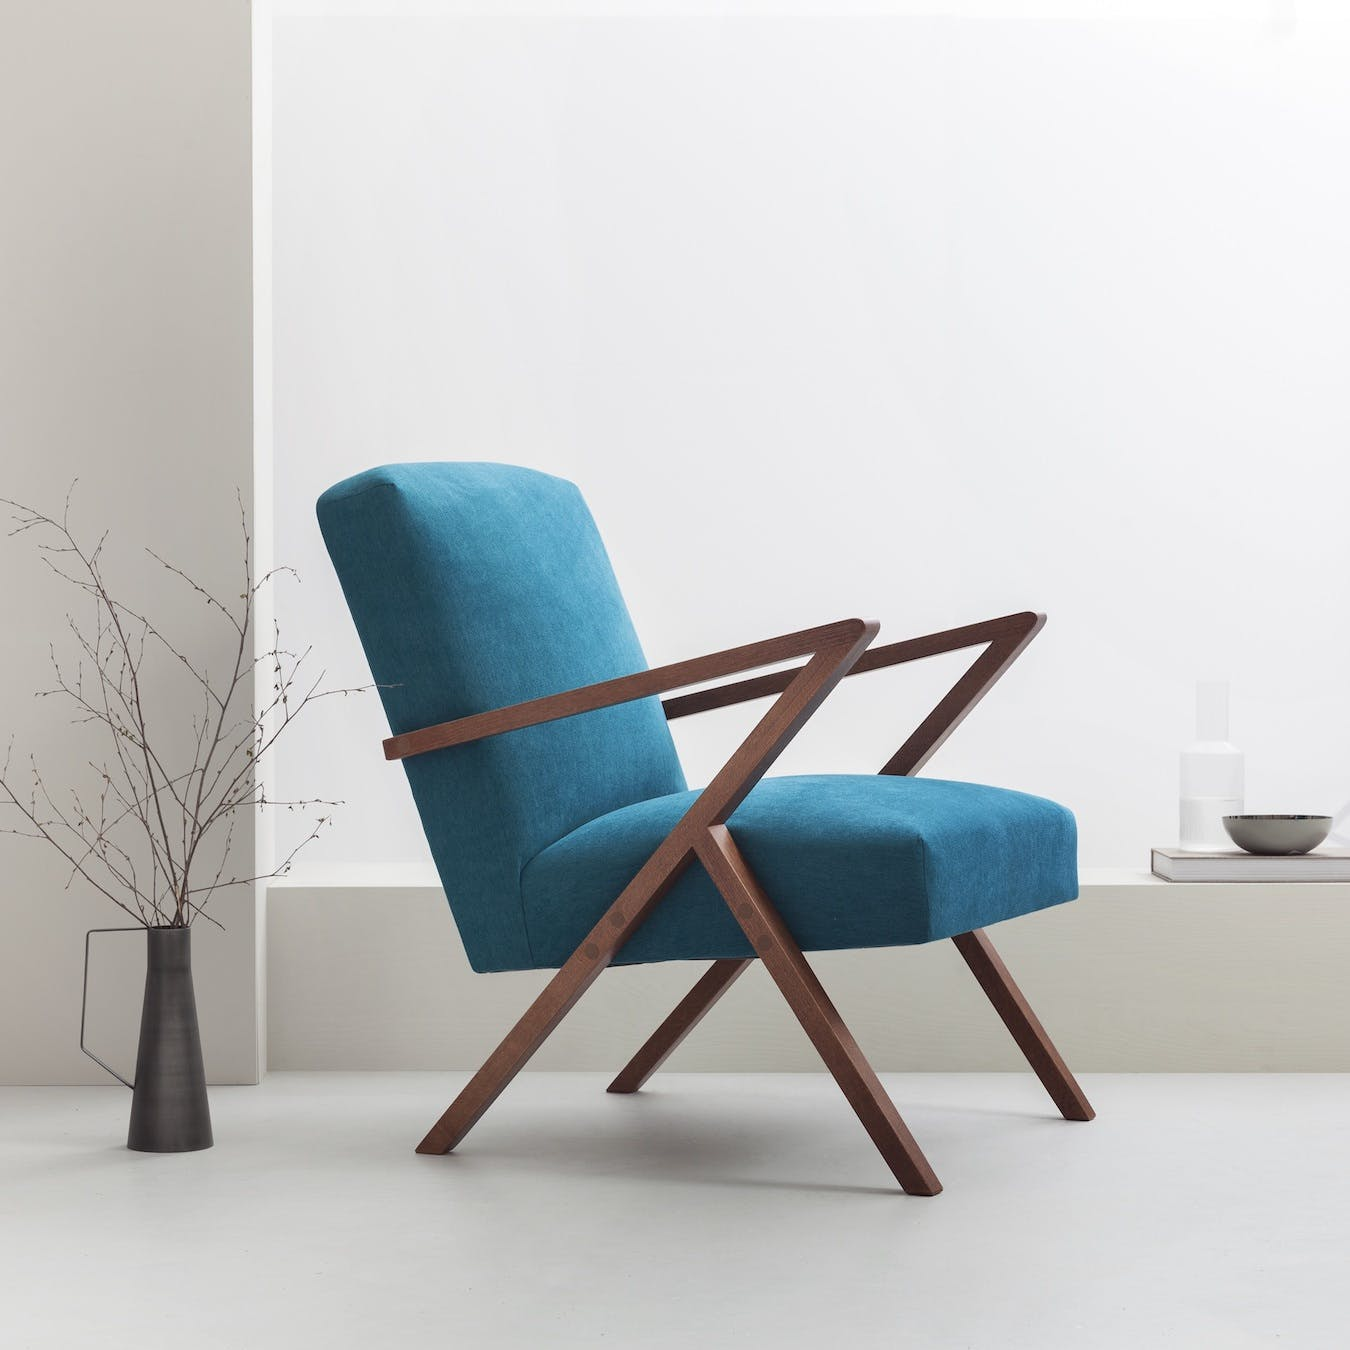 Retrostar Chair - Basic Line in Turquoise